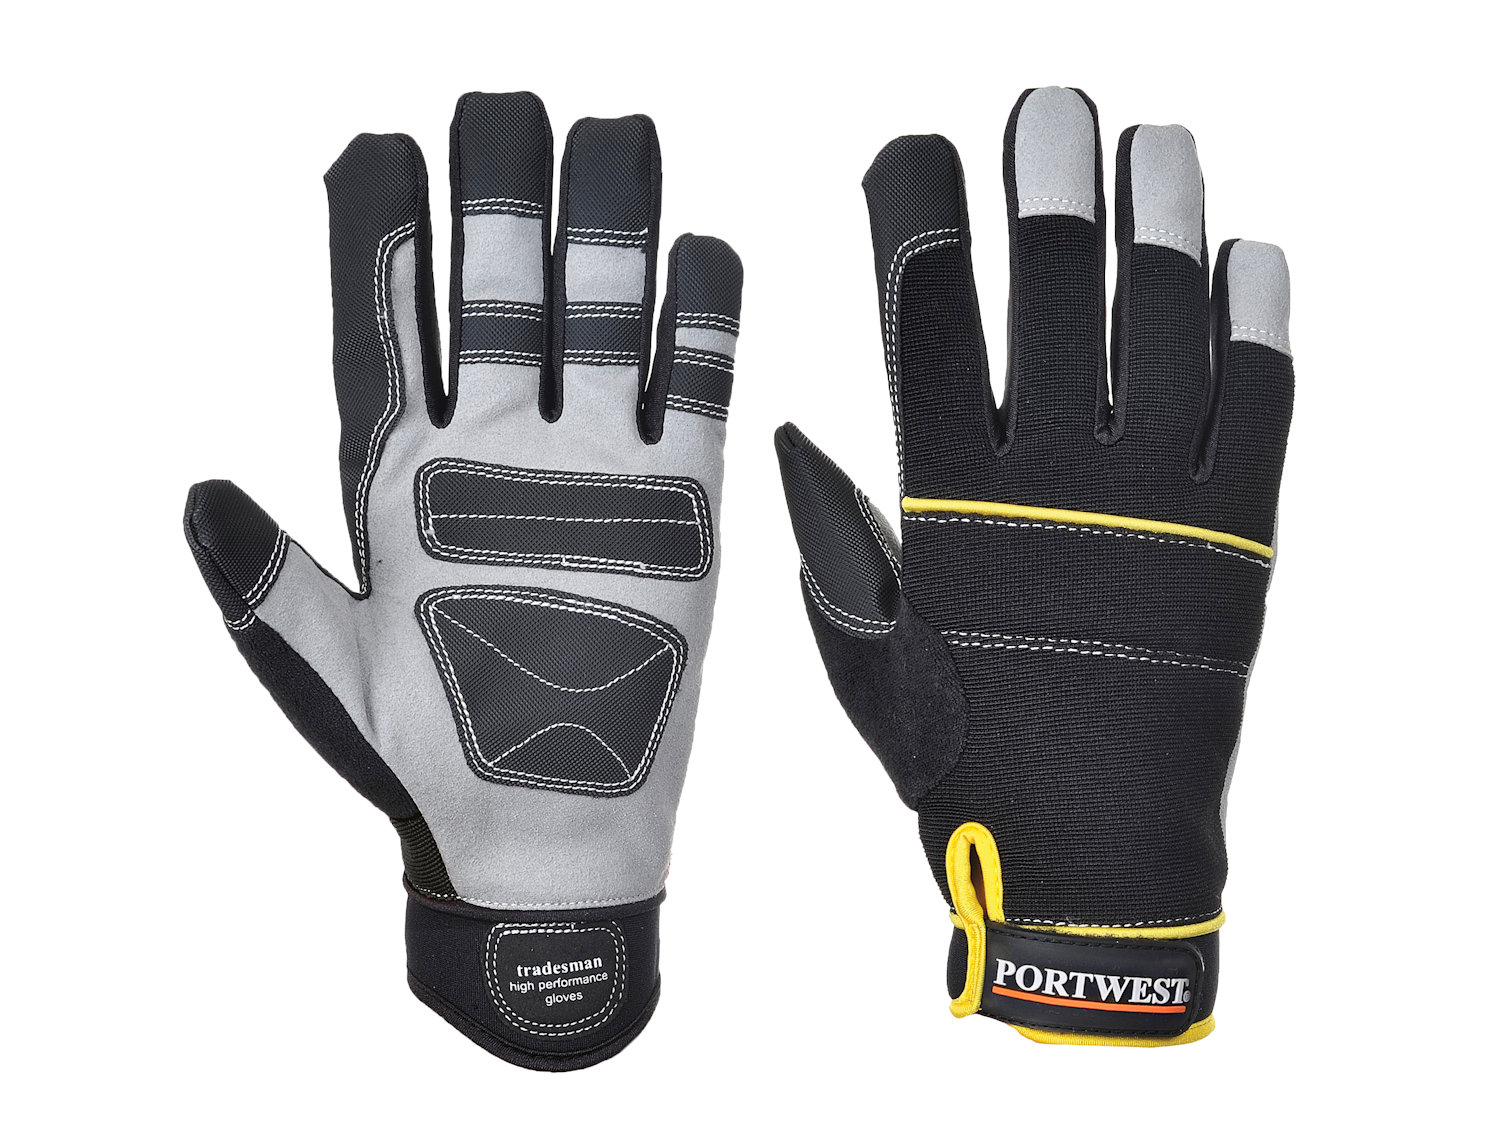 Portwest A710 glove